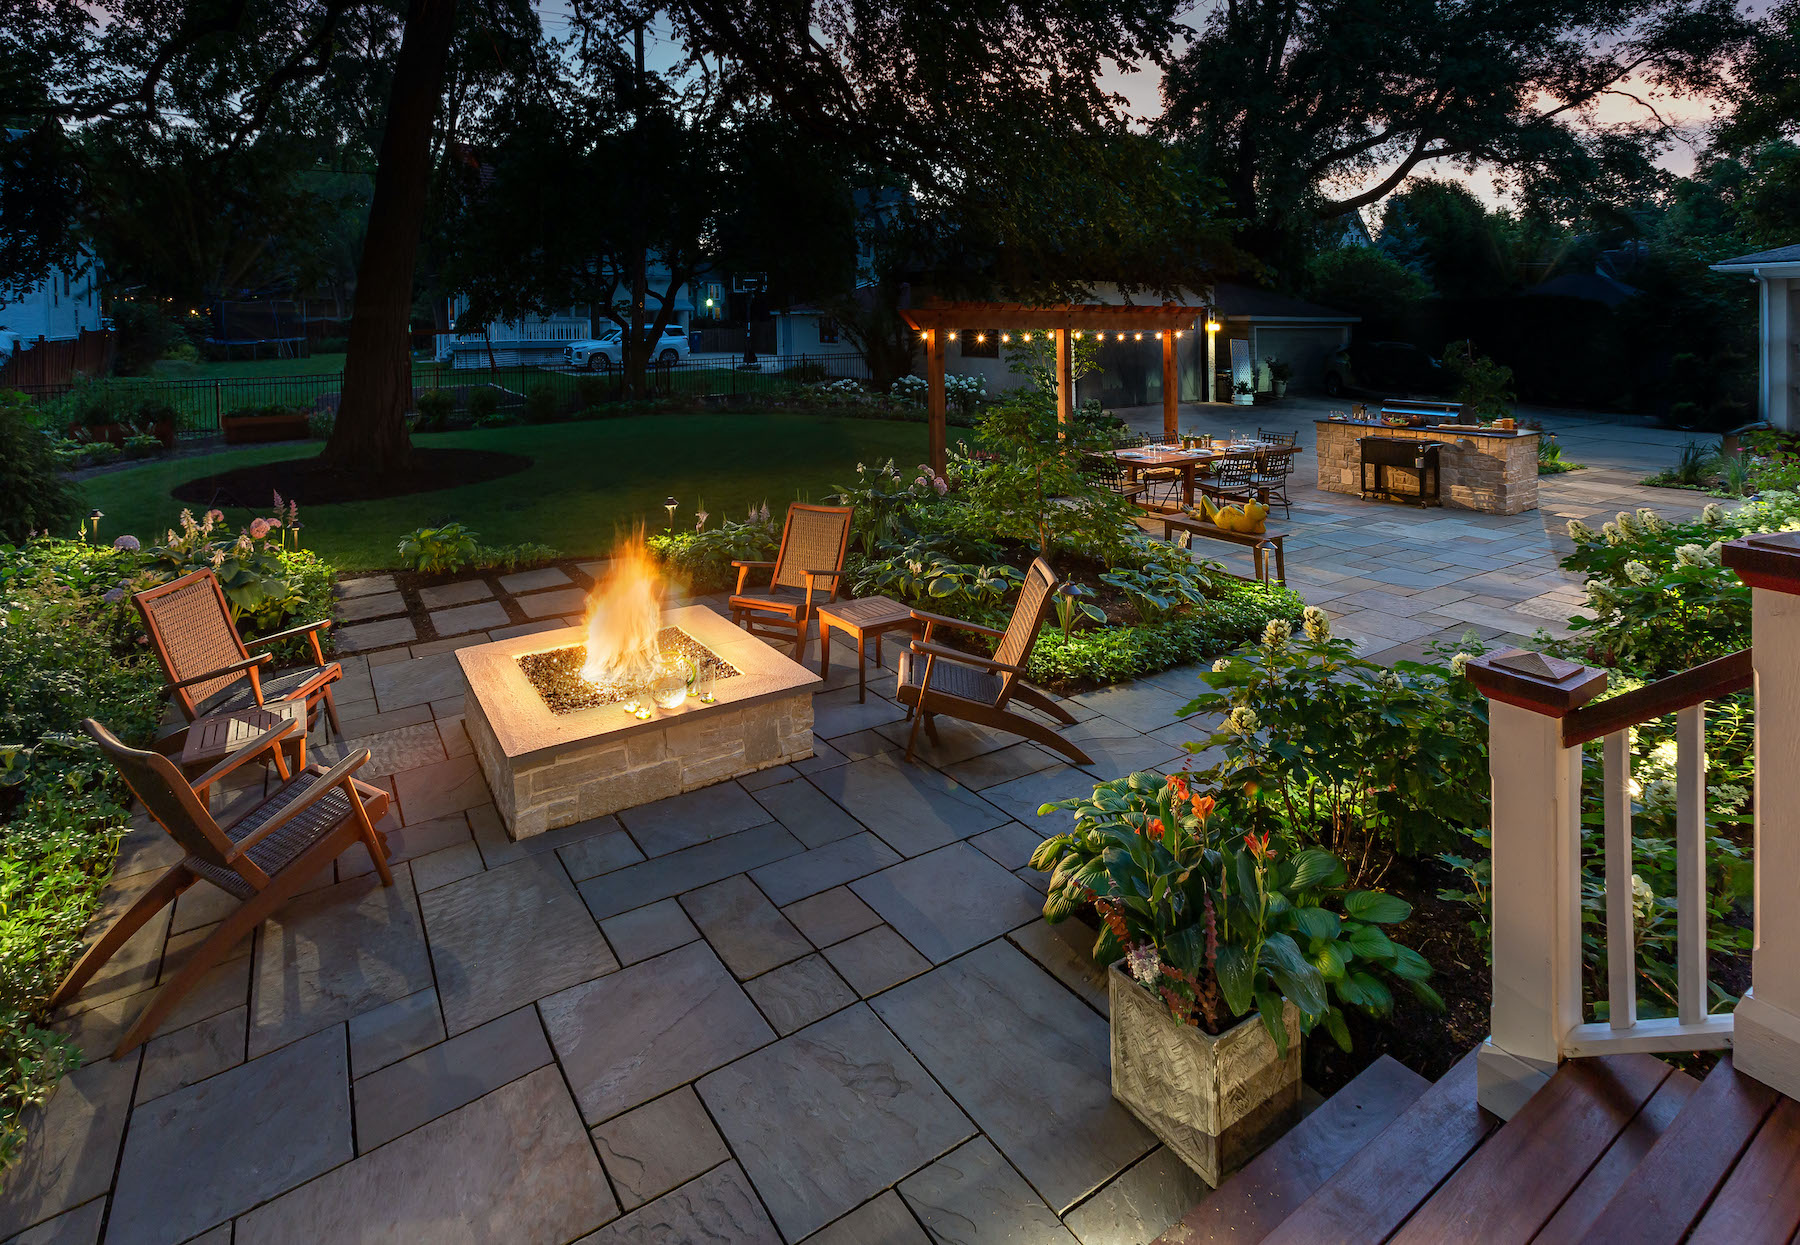 The 6 Best Landscape Design & Build Companies in Greater Chicago